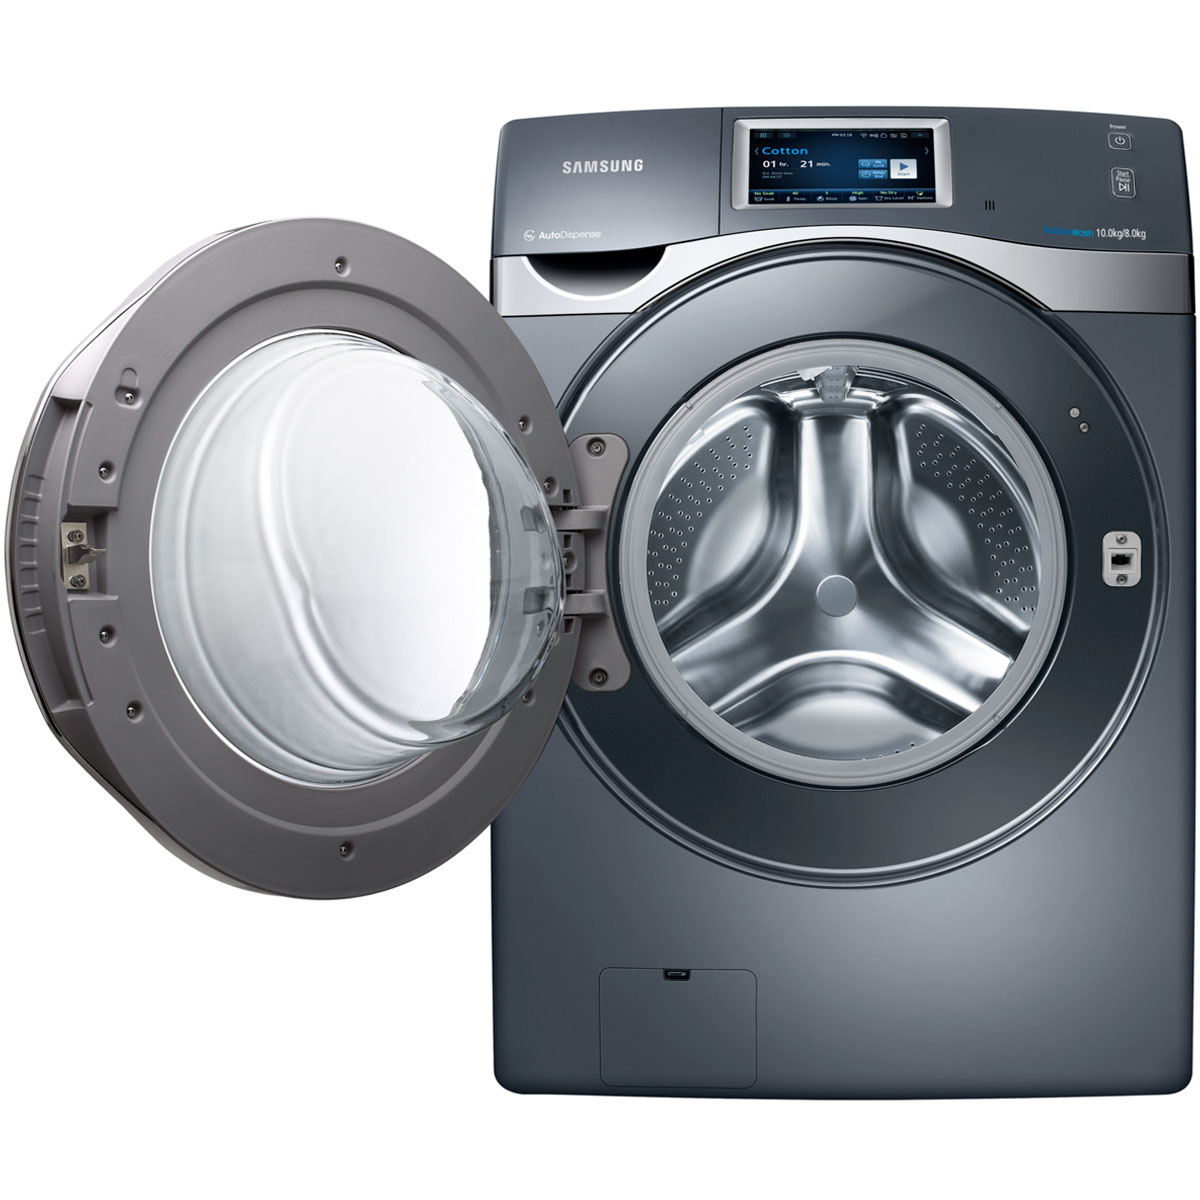 Samsung Wd10f8k9abg 16kg Washer Dryer Combo With Wifi